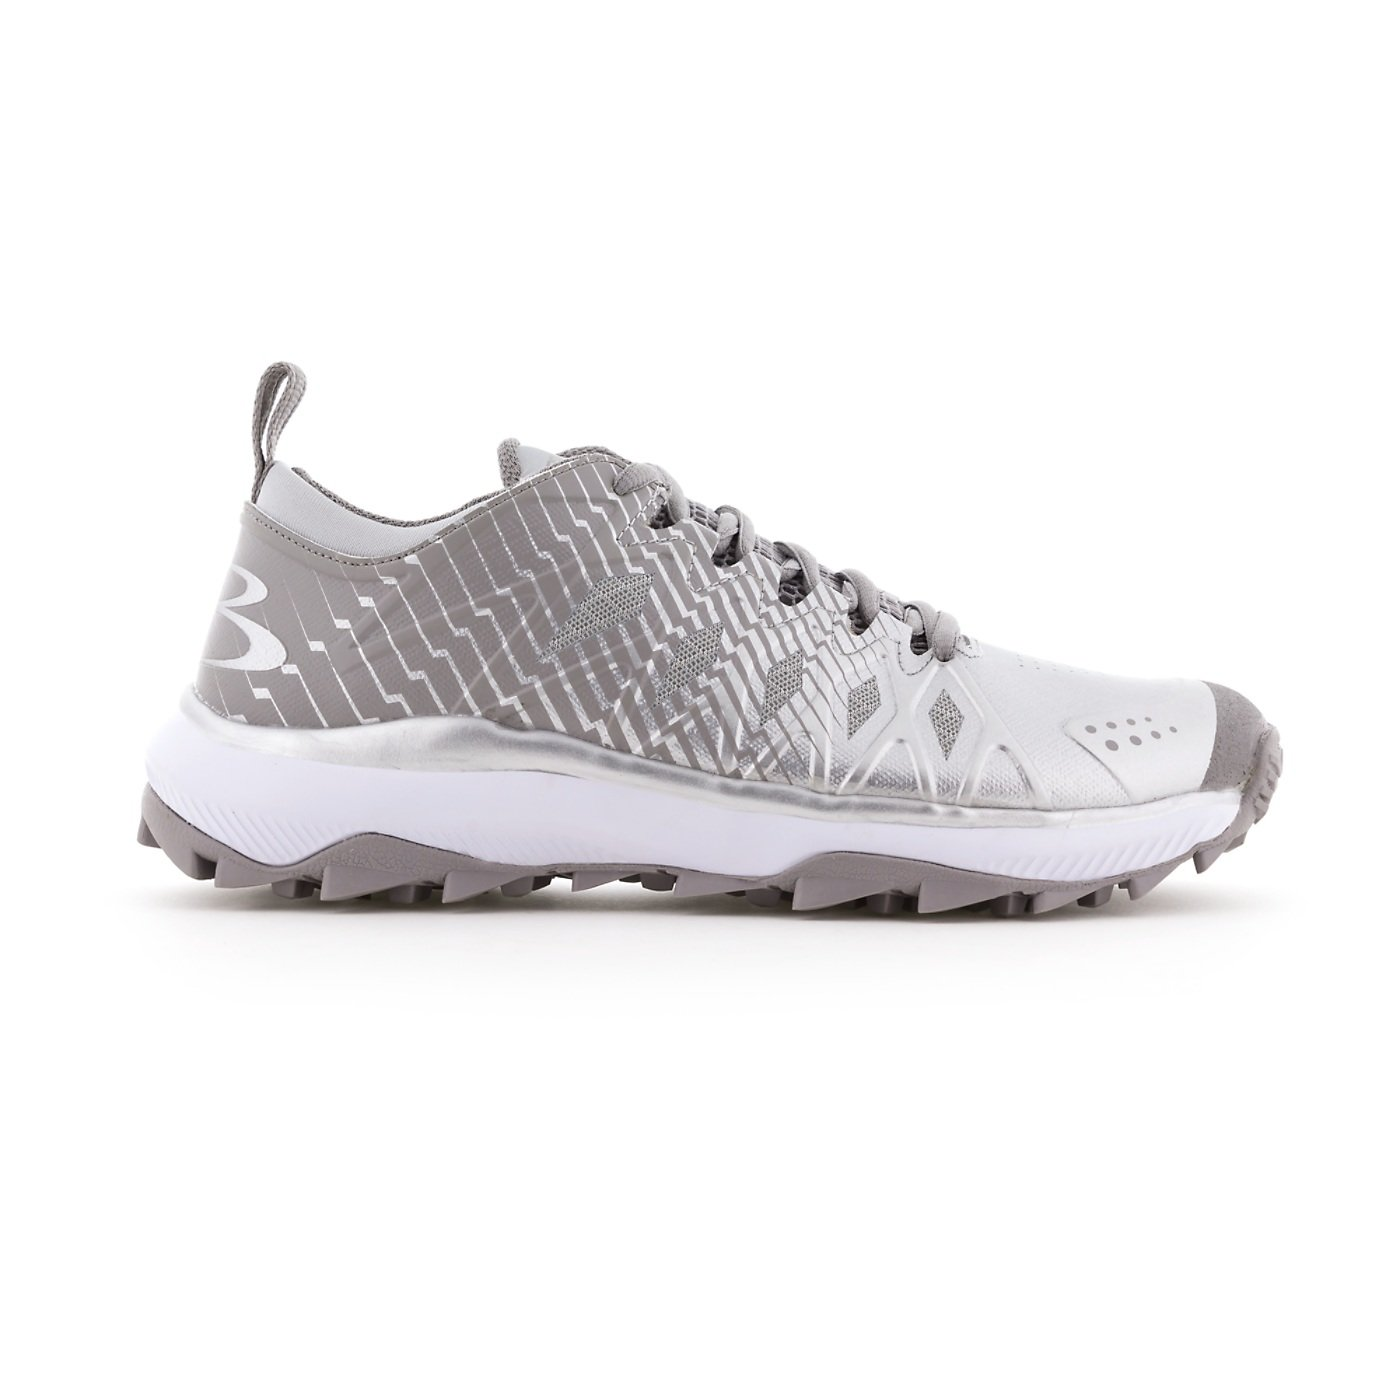 Boombah Men's Squadron Turf Gray/Silver - Size 13